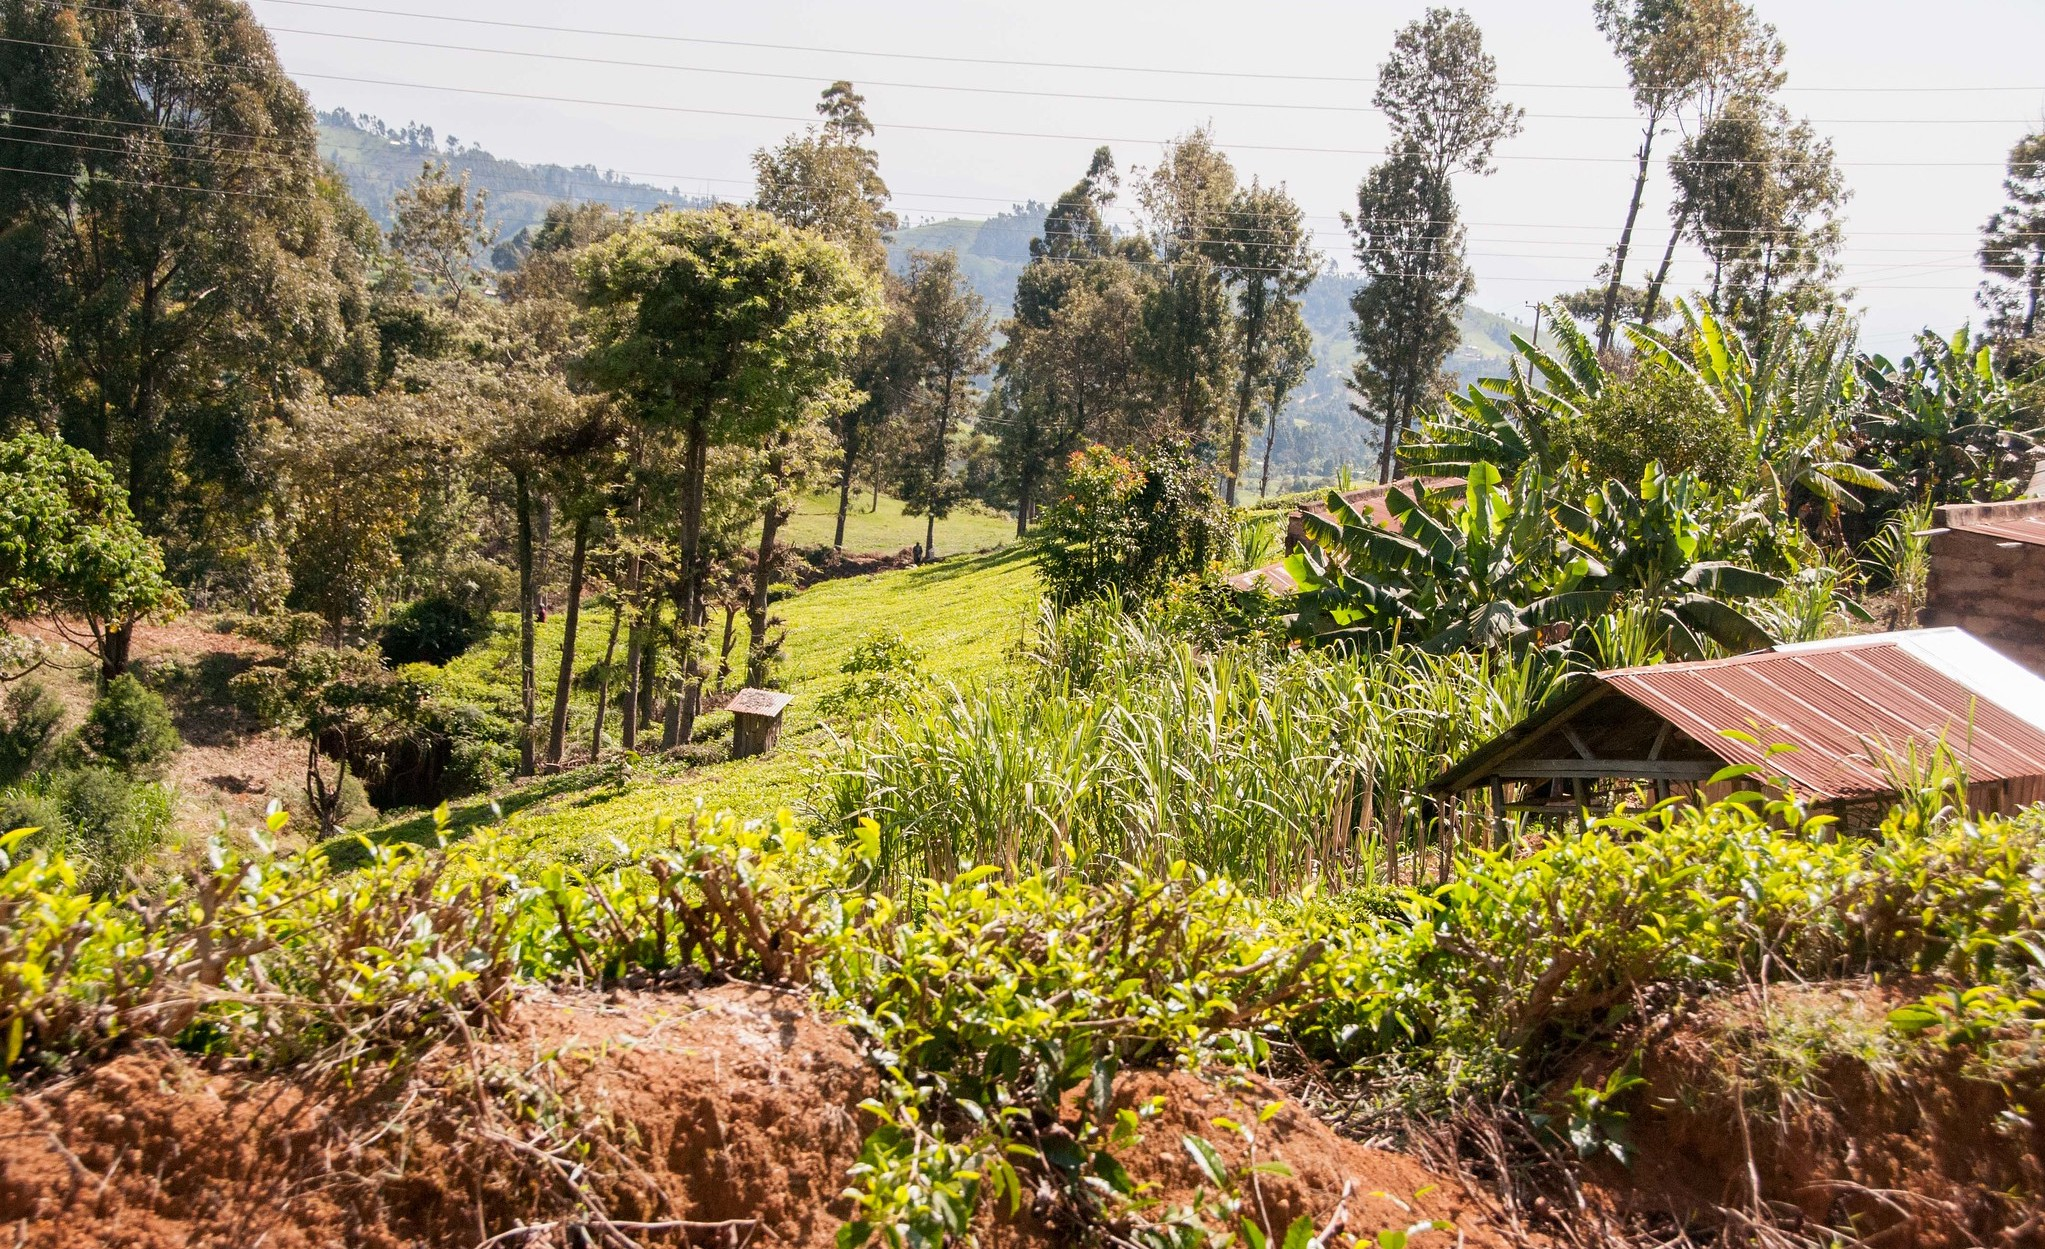 Trees on farms are a source of biomass. Photo: World Agroforestry/Ake Mamo